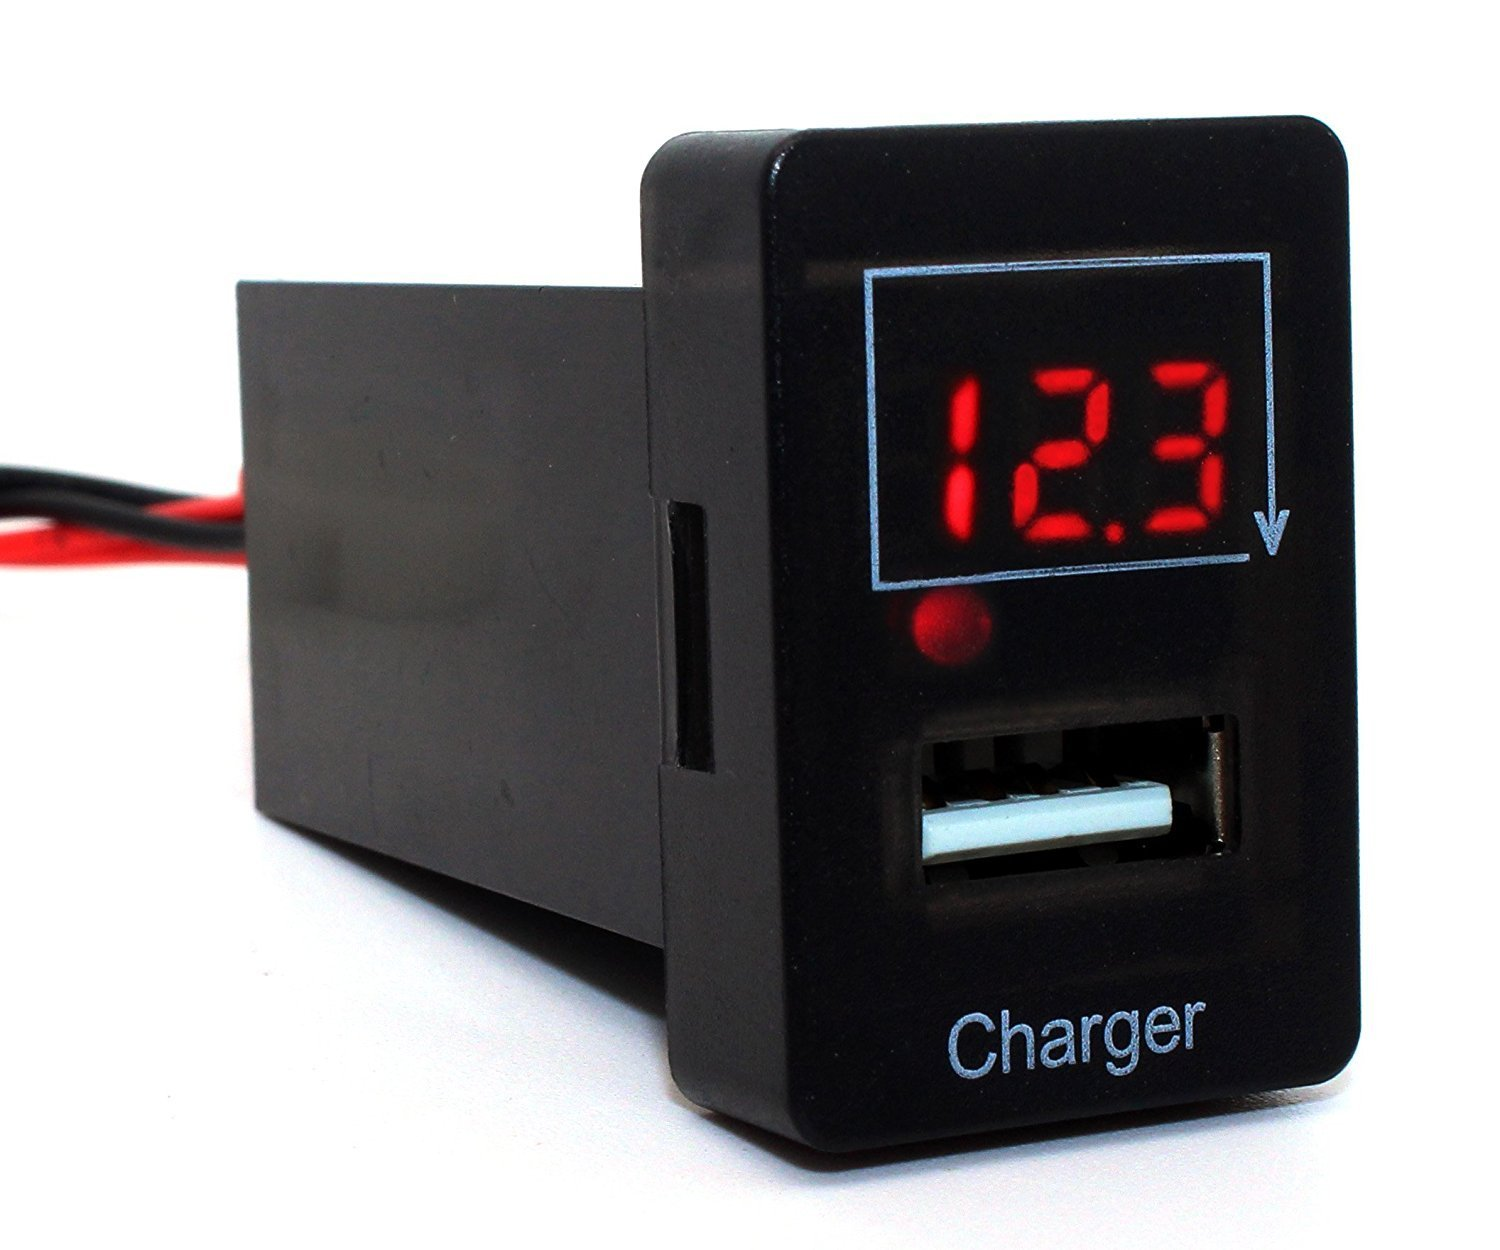 Cheap Usb Socket Wiring Find Deals On Line At Charger Get Quotations Cllena Toyota Voltmeter Tester 19ft And Fuse Power